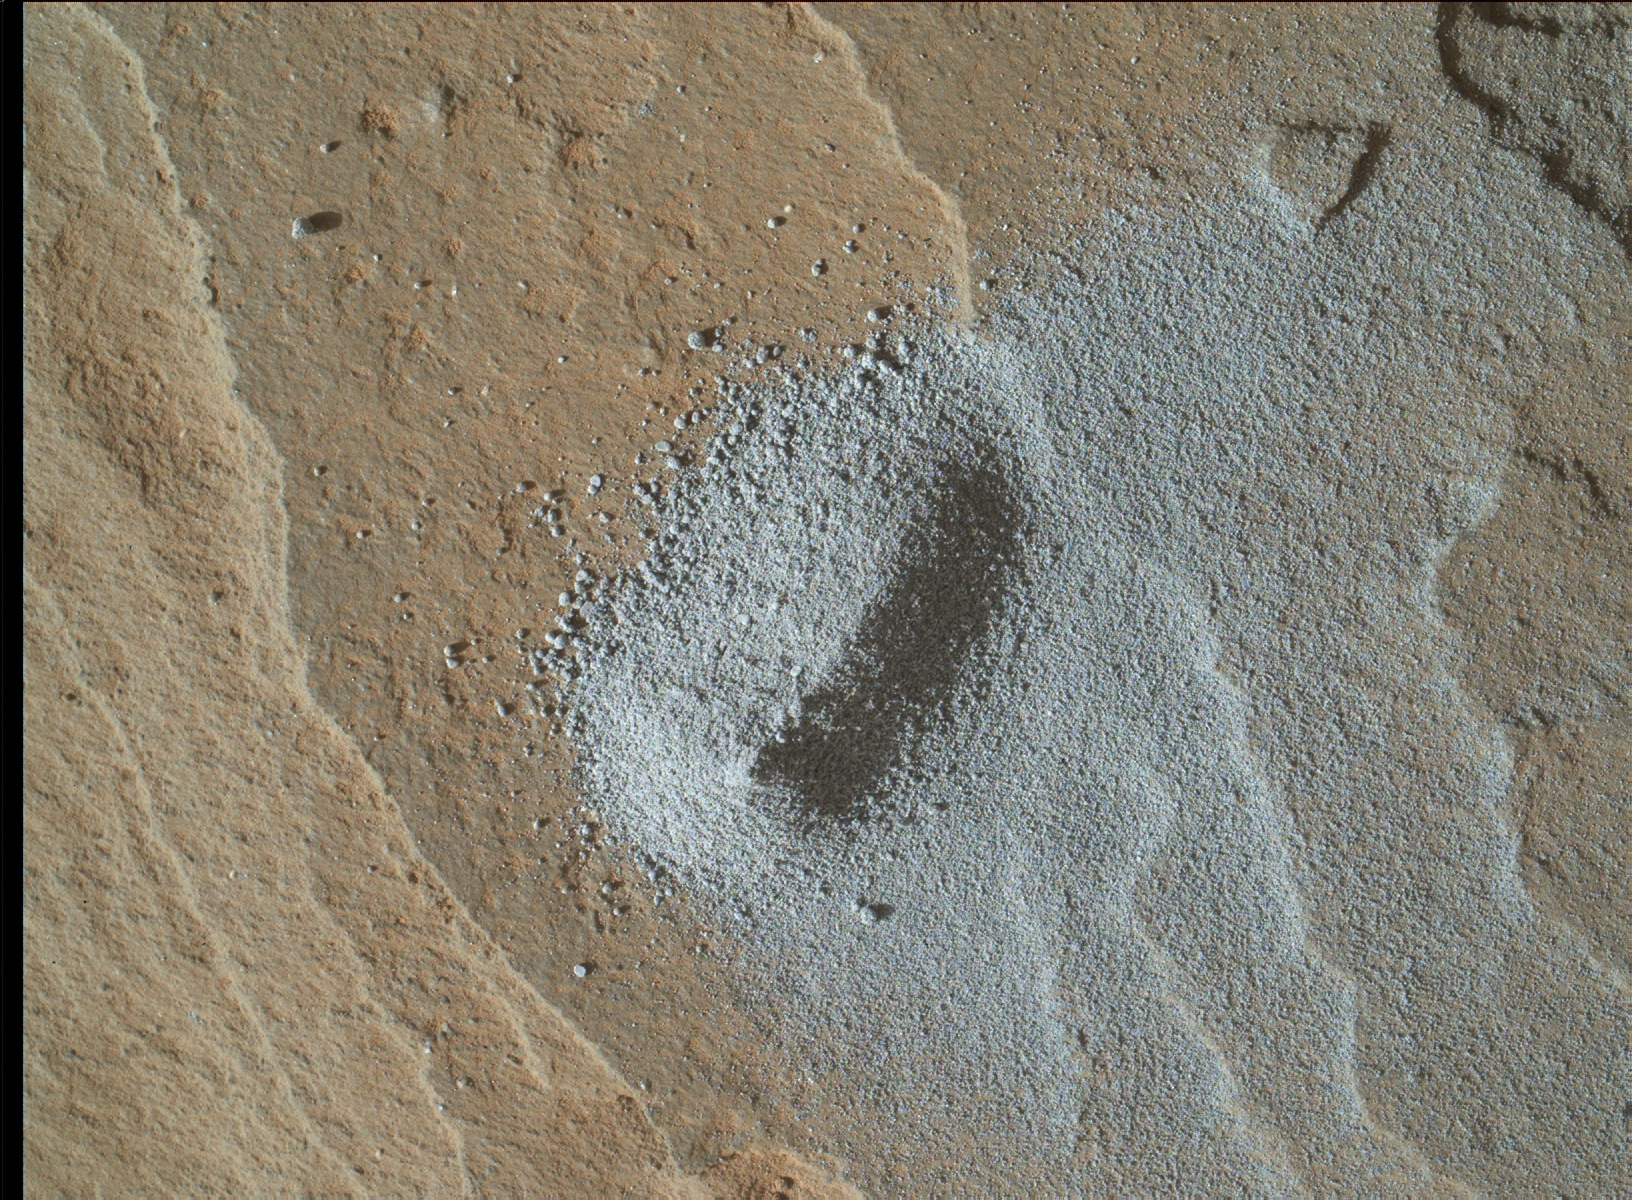 Nasa's Mars rover Curiosity acquired this image using its Mars Hand Lens Imager (MAHLI) on Sol 1143